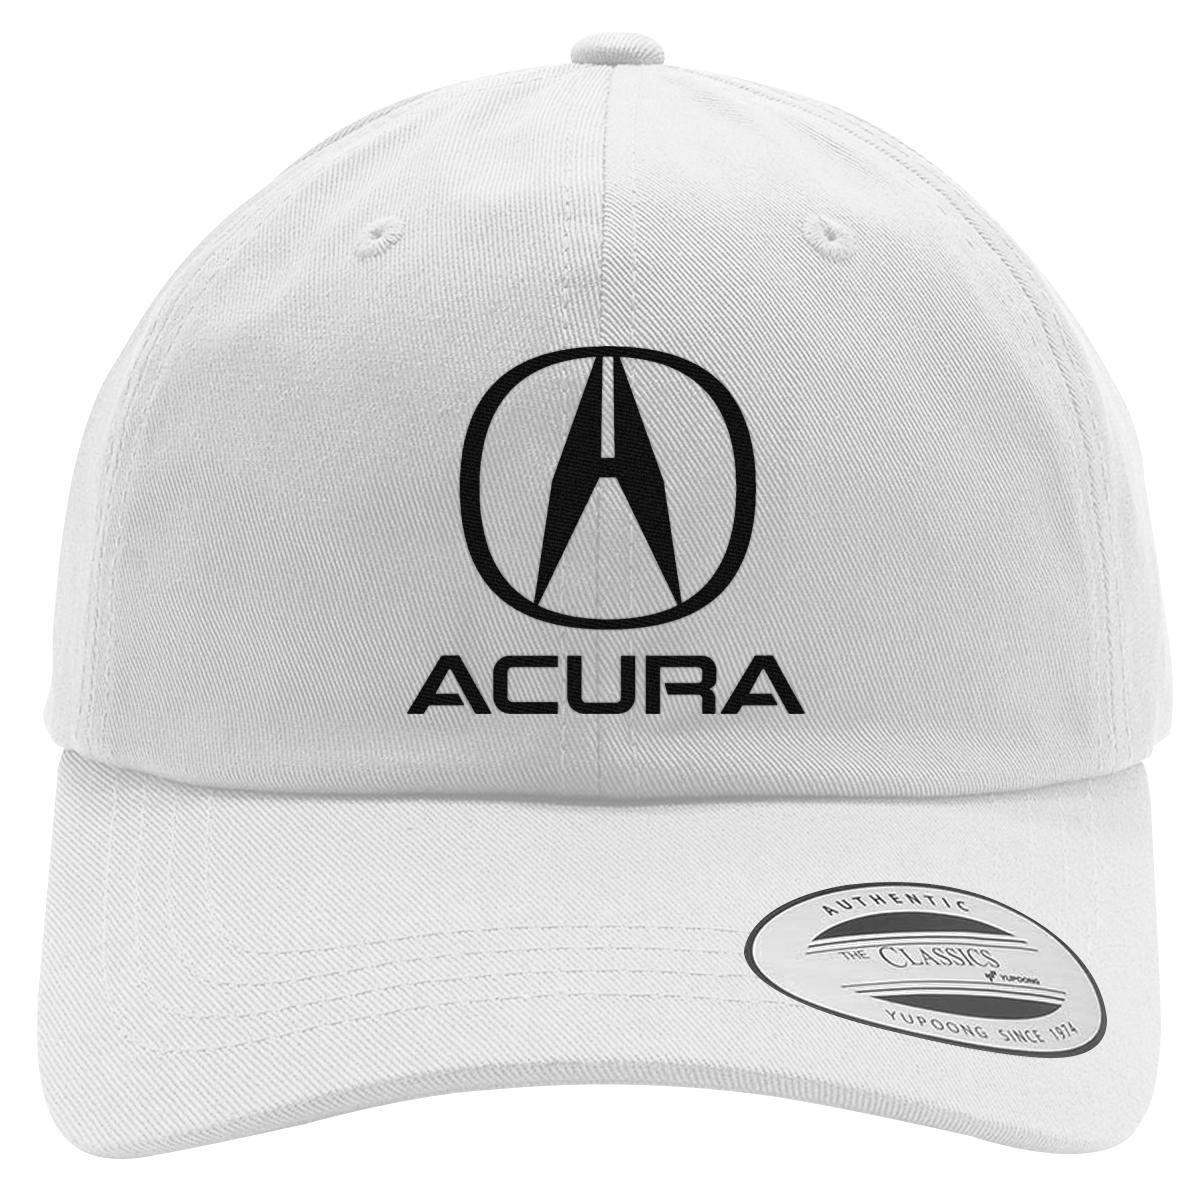 Acura Logo Cotton Twill Hat Embroidered Customoncom - Acura hat